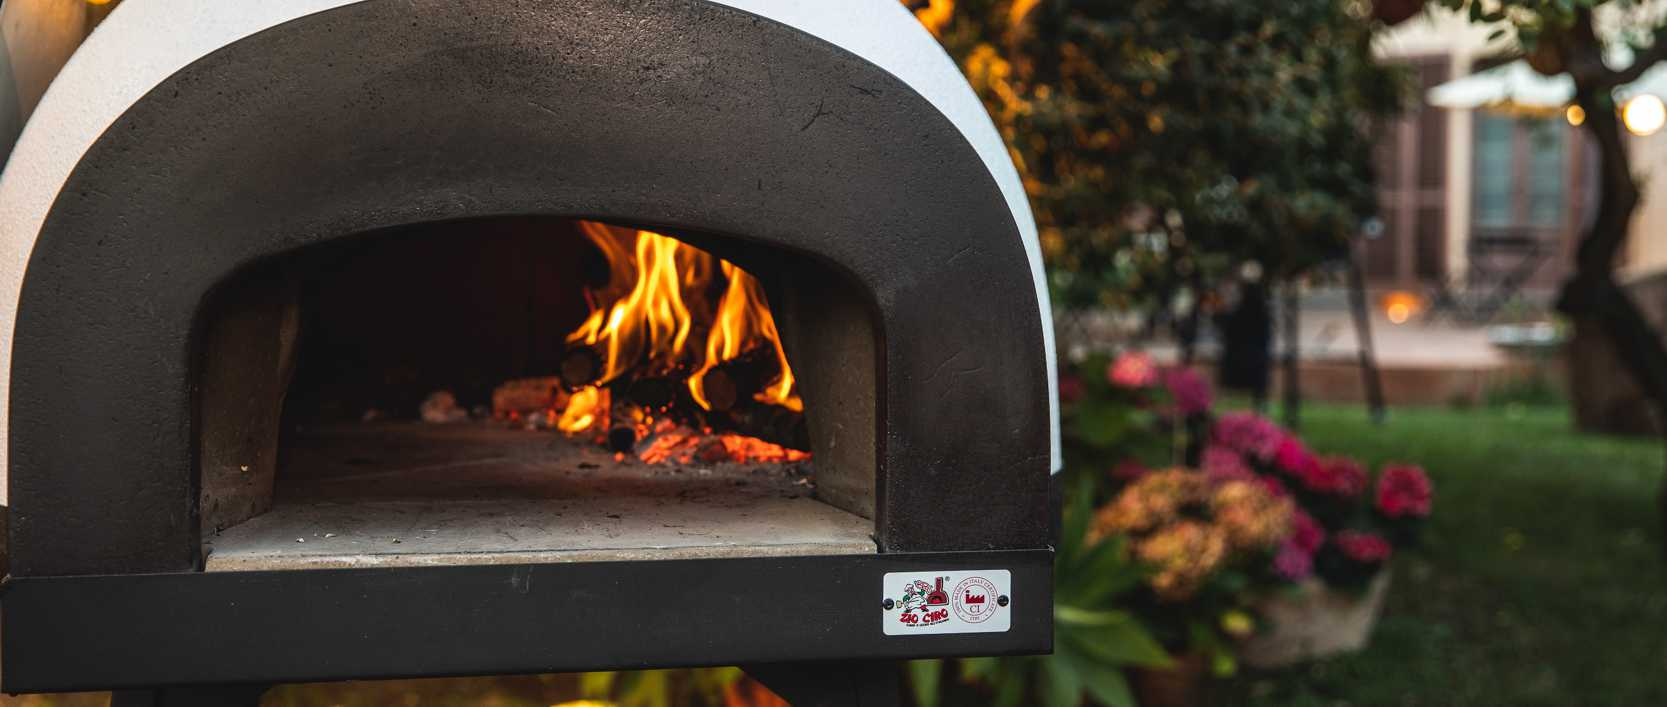 A REAL PIZZA OVEN FOR YOUR BACKYARD